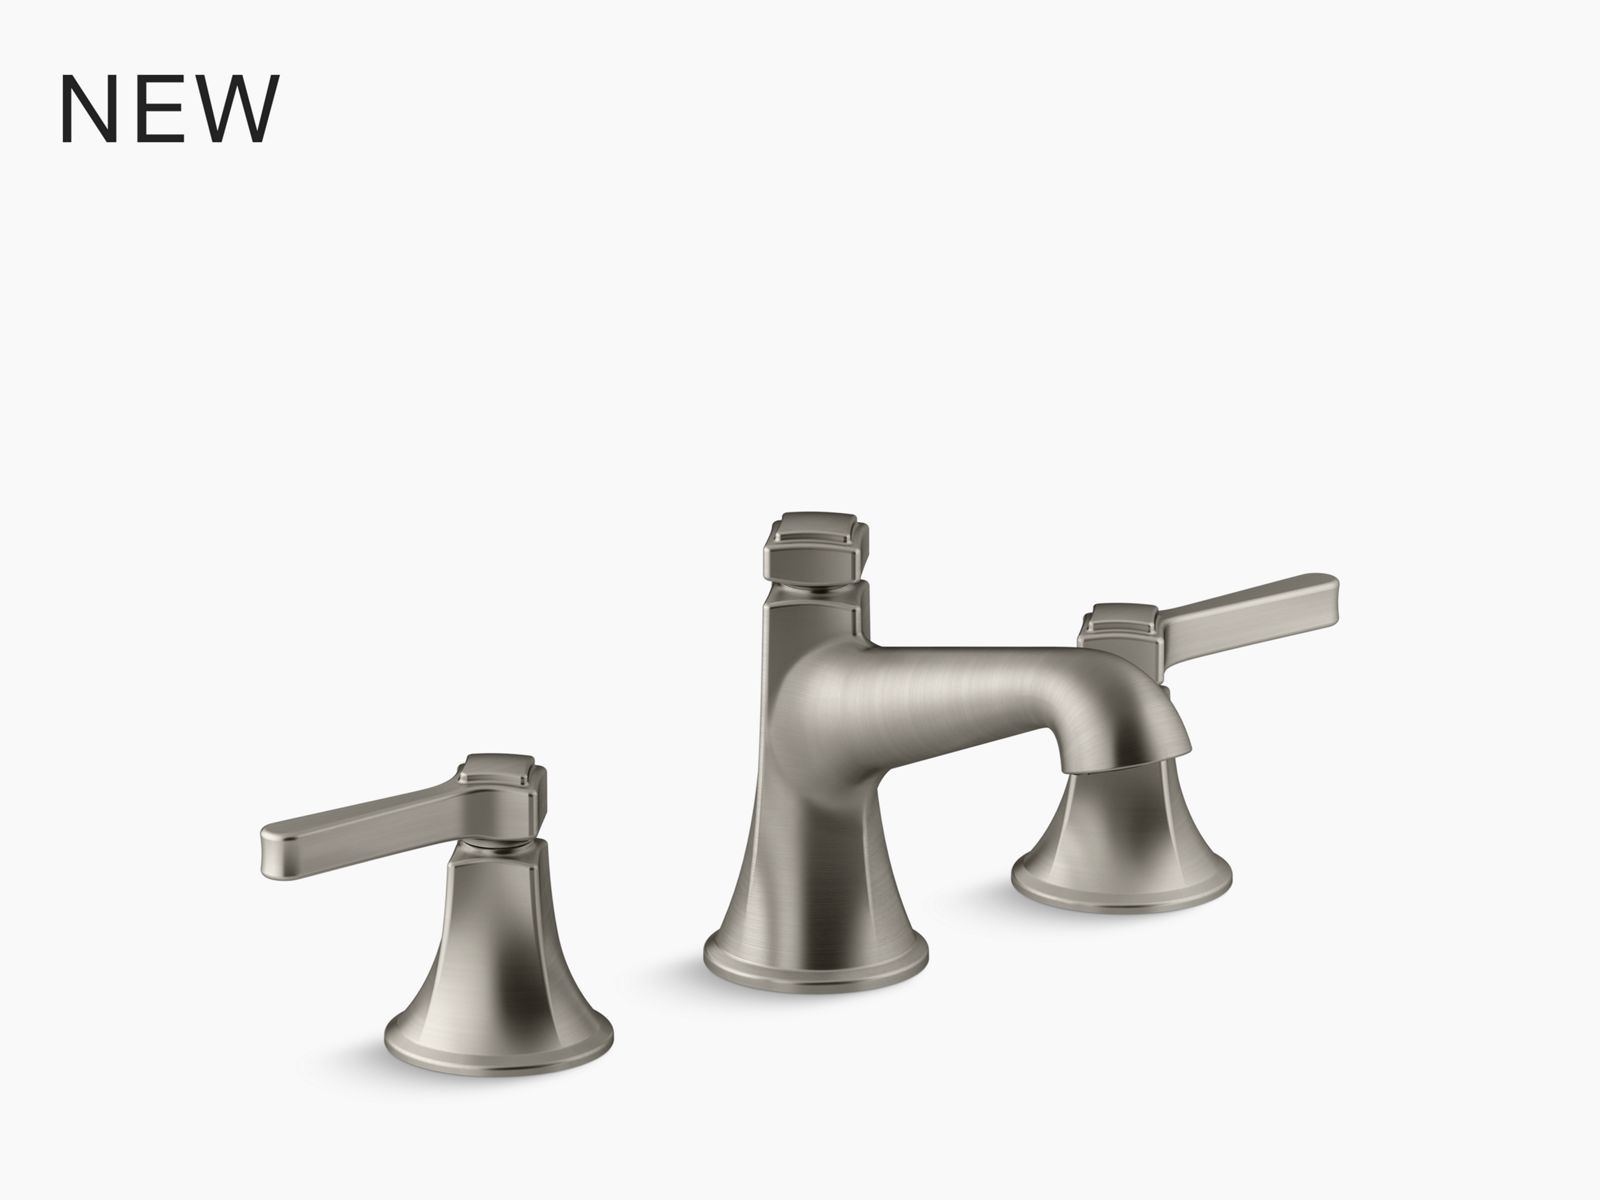 malleco pull down kitchen sink faucet with soap lotion dispenser